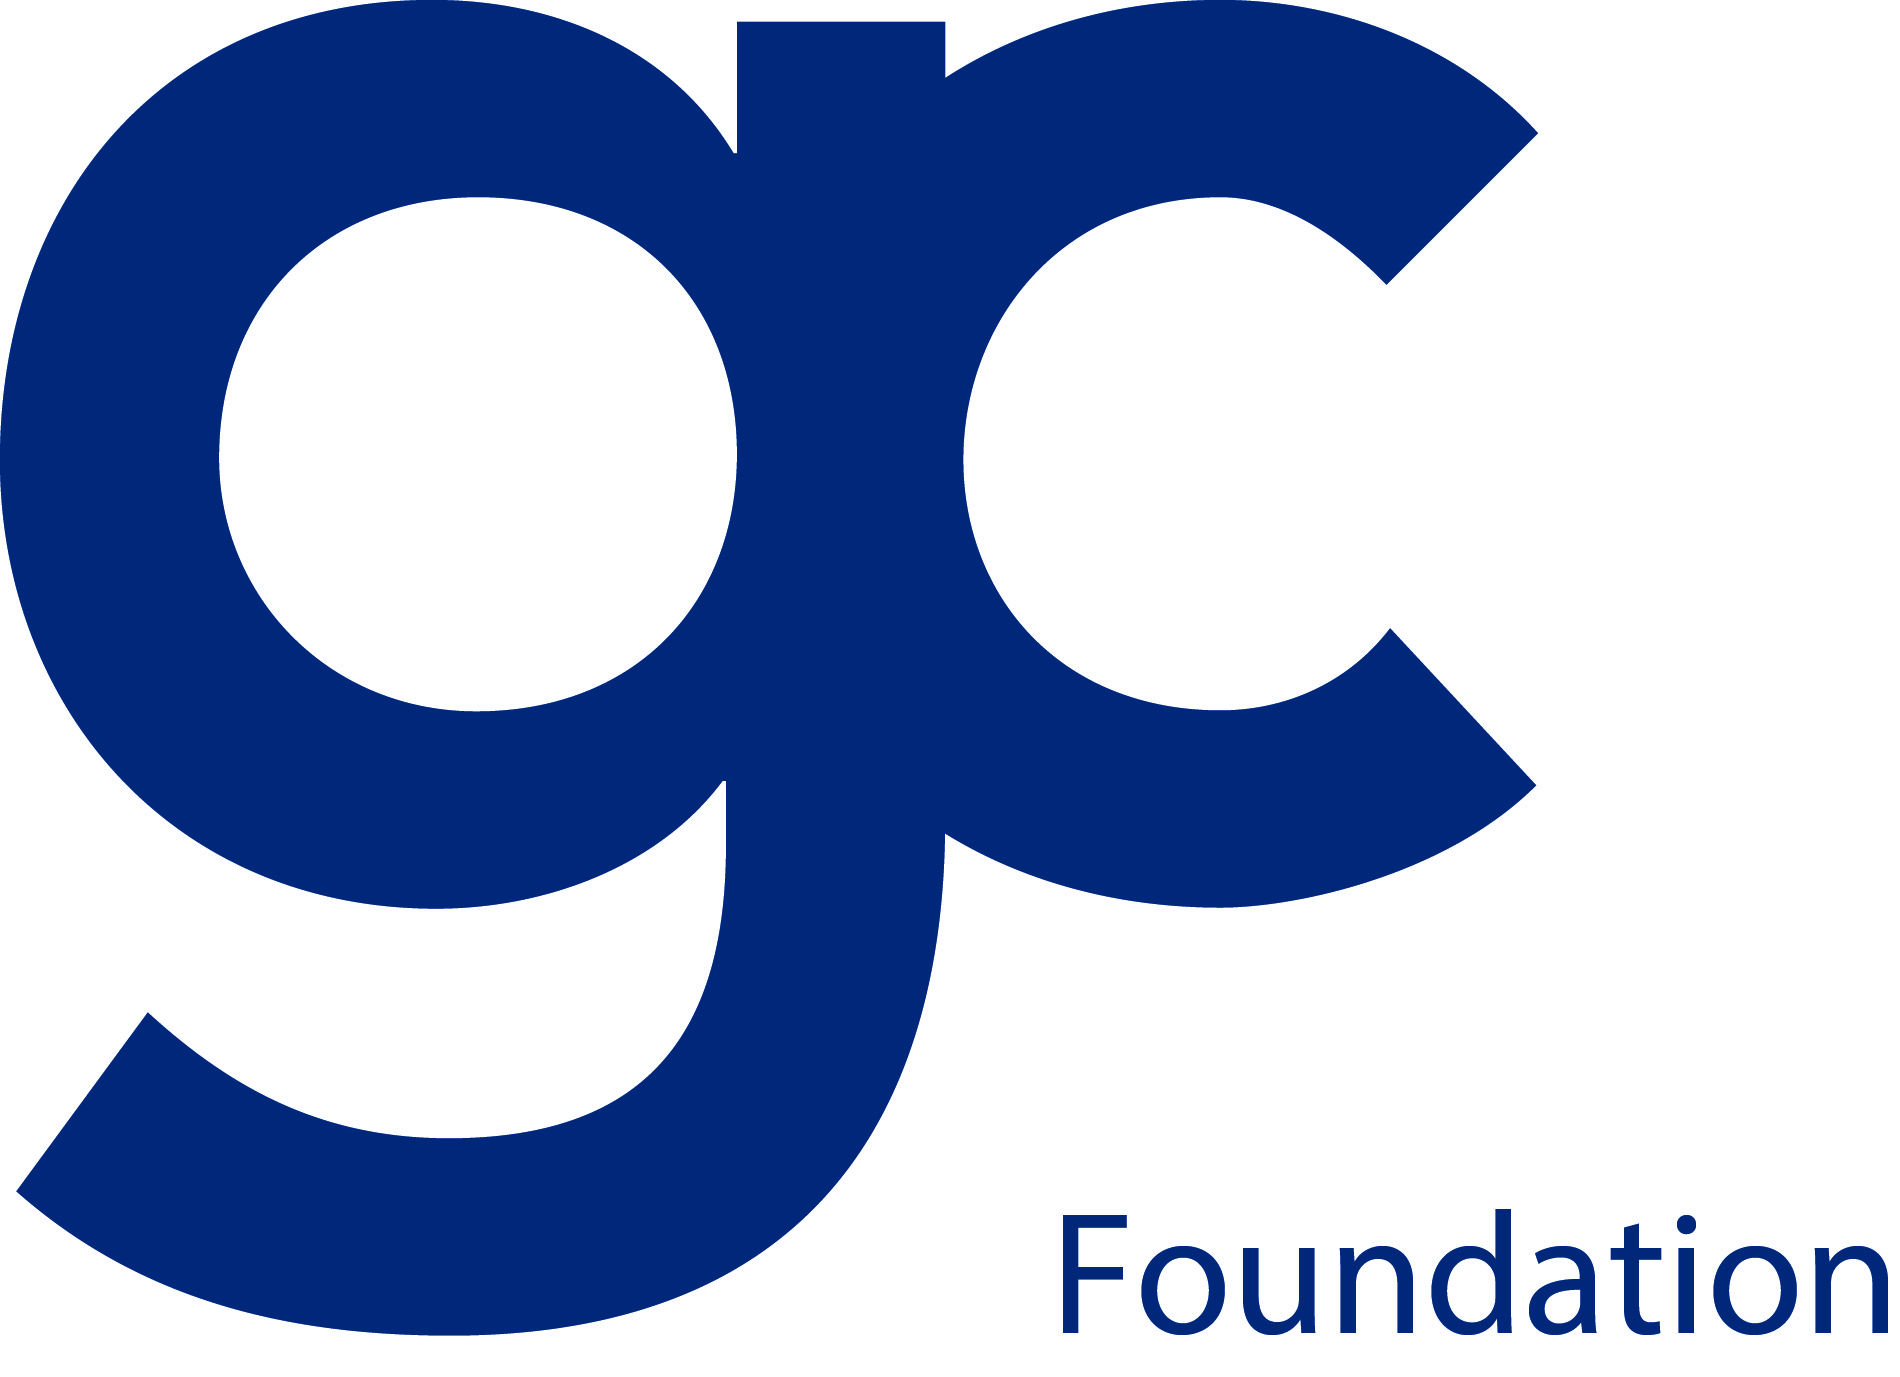 Stichting GC Foundation